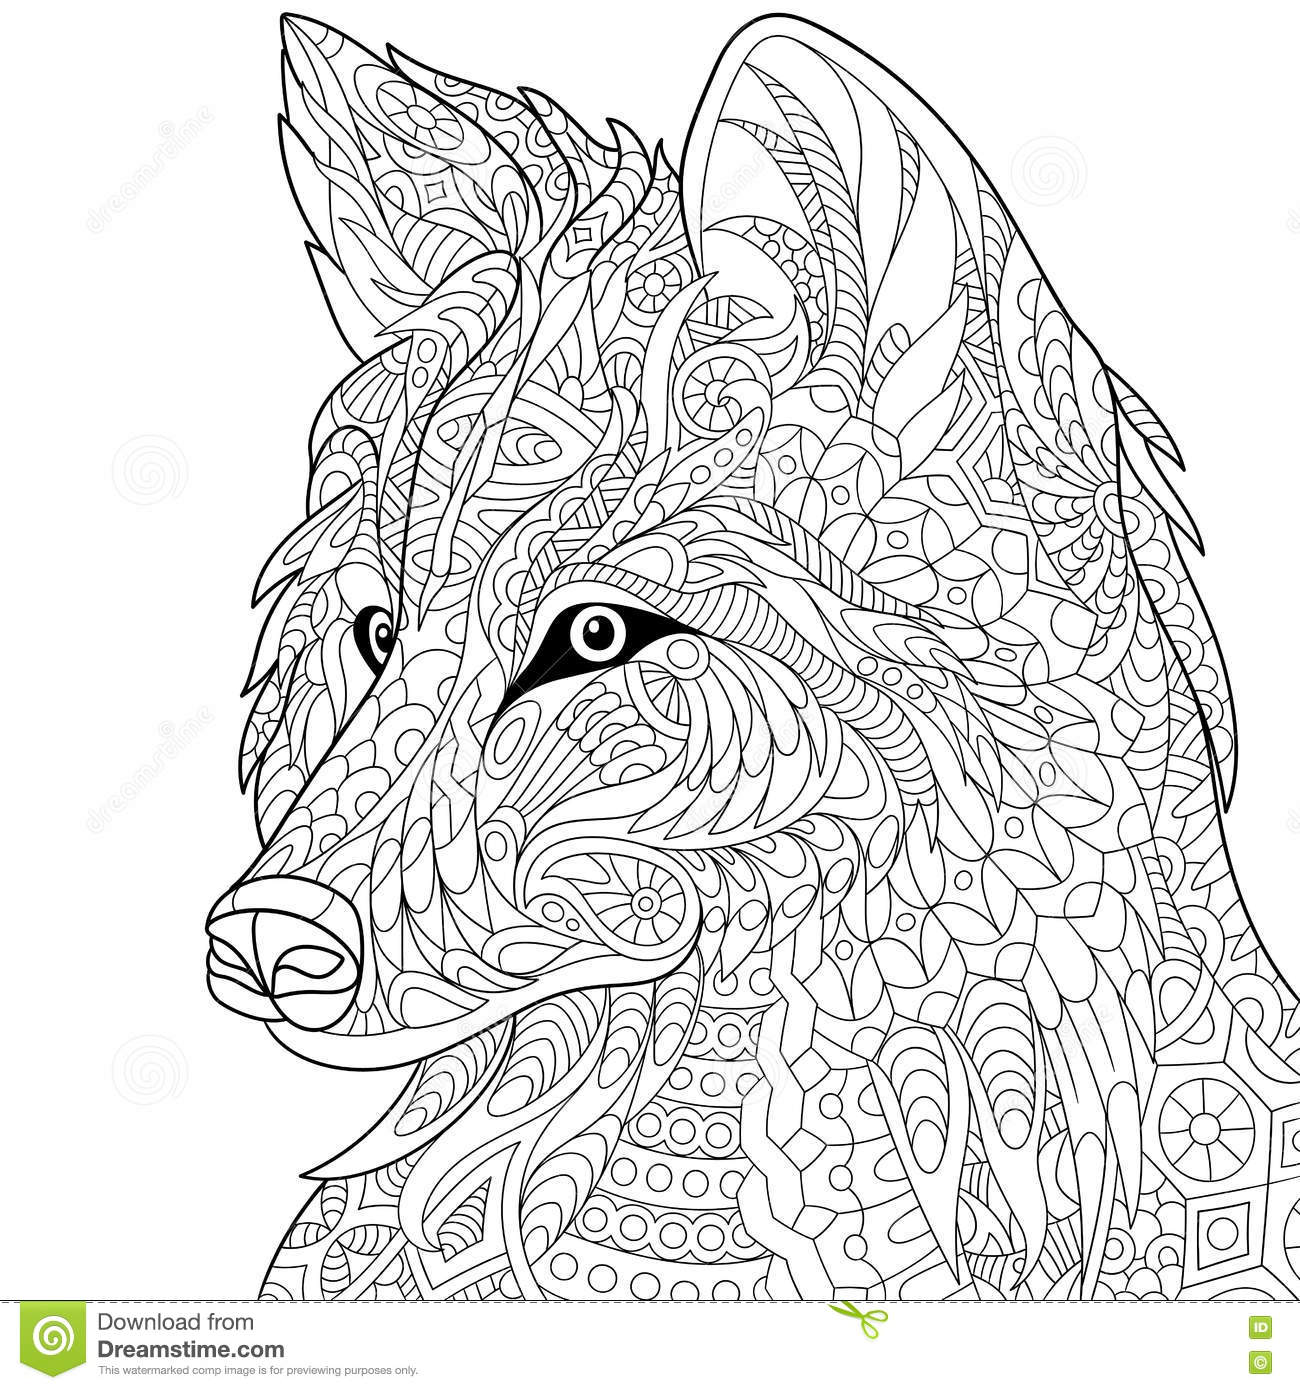 wolf coloring pages for adults - zentangle stylized wolf stock vector illustration of